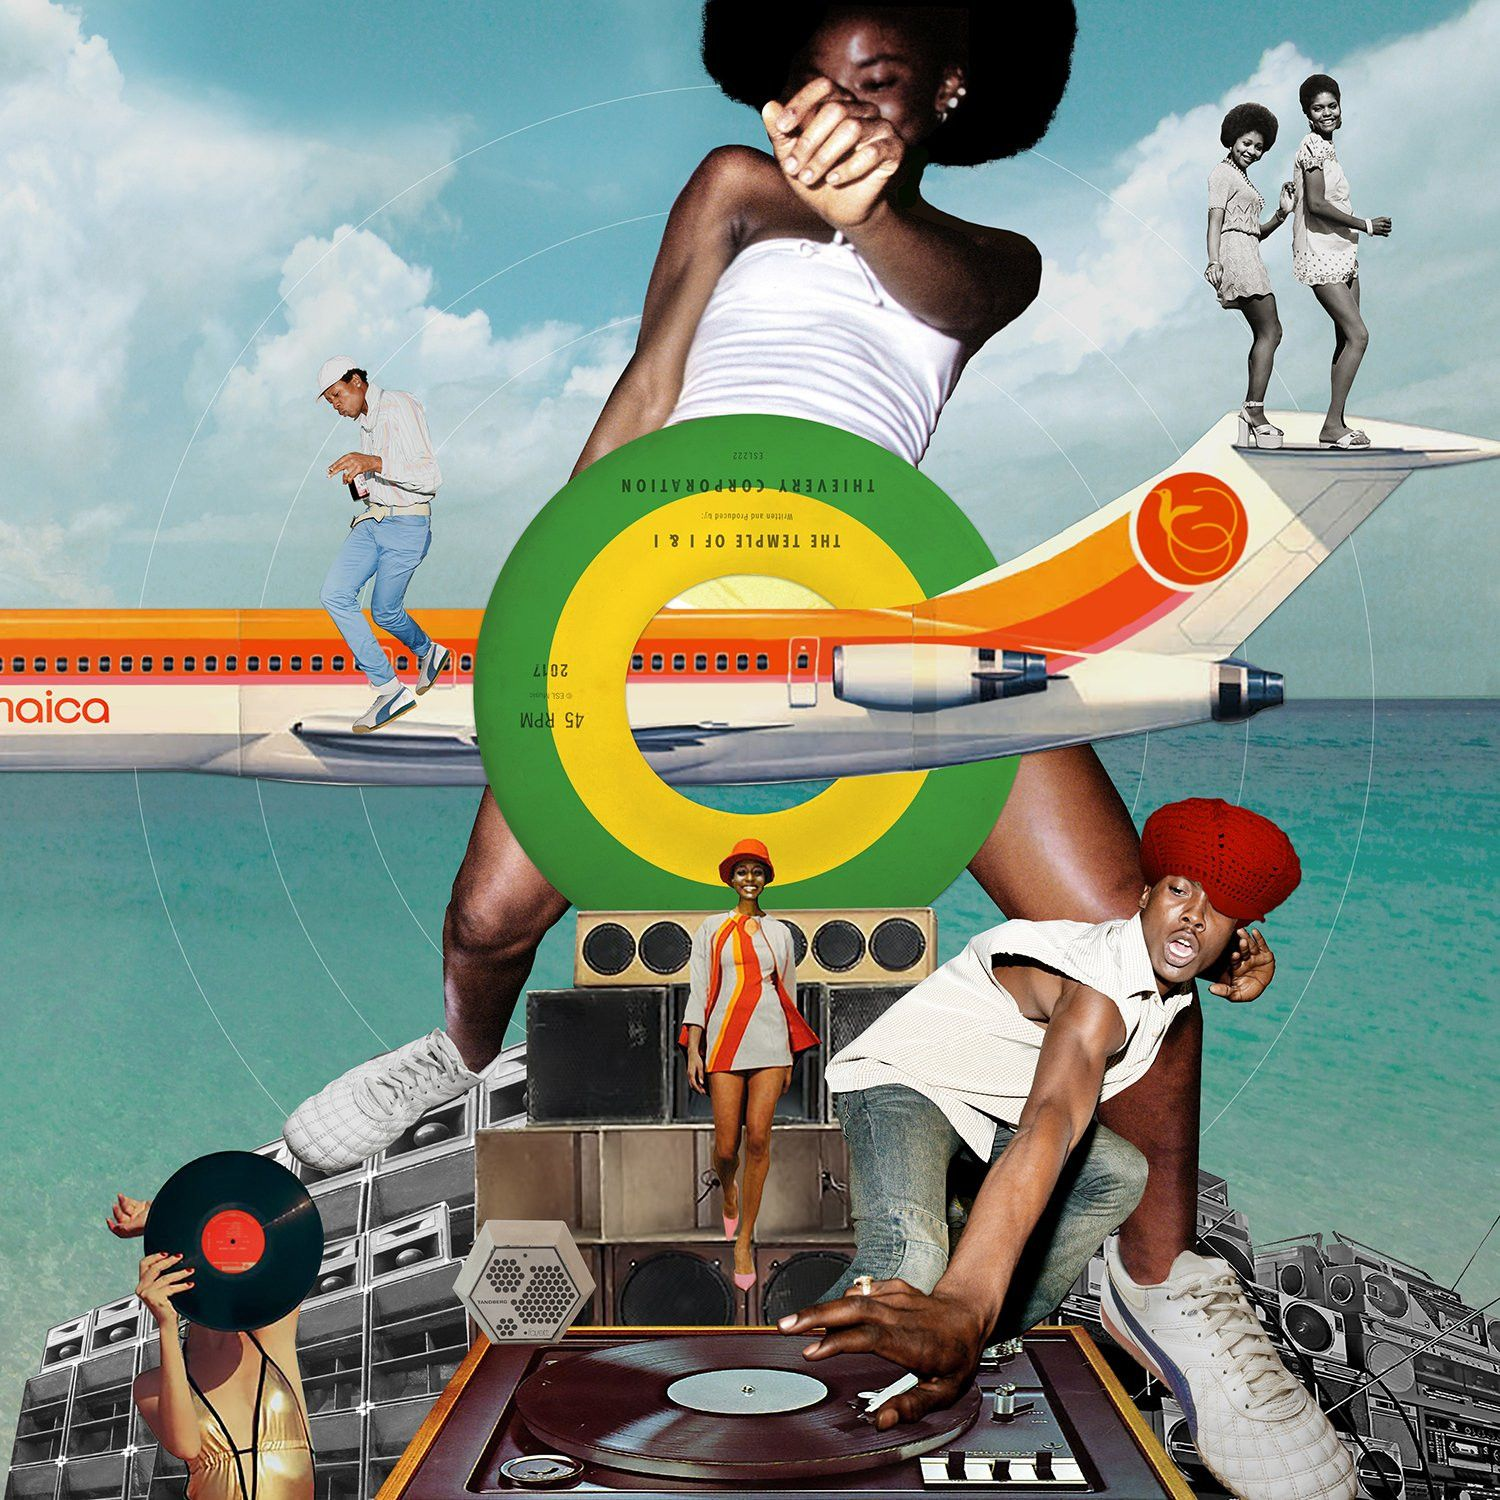 Thievery Corporation - The Temple Of I & I album cover